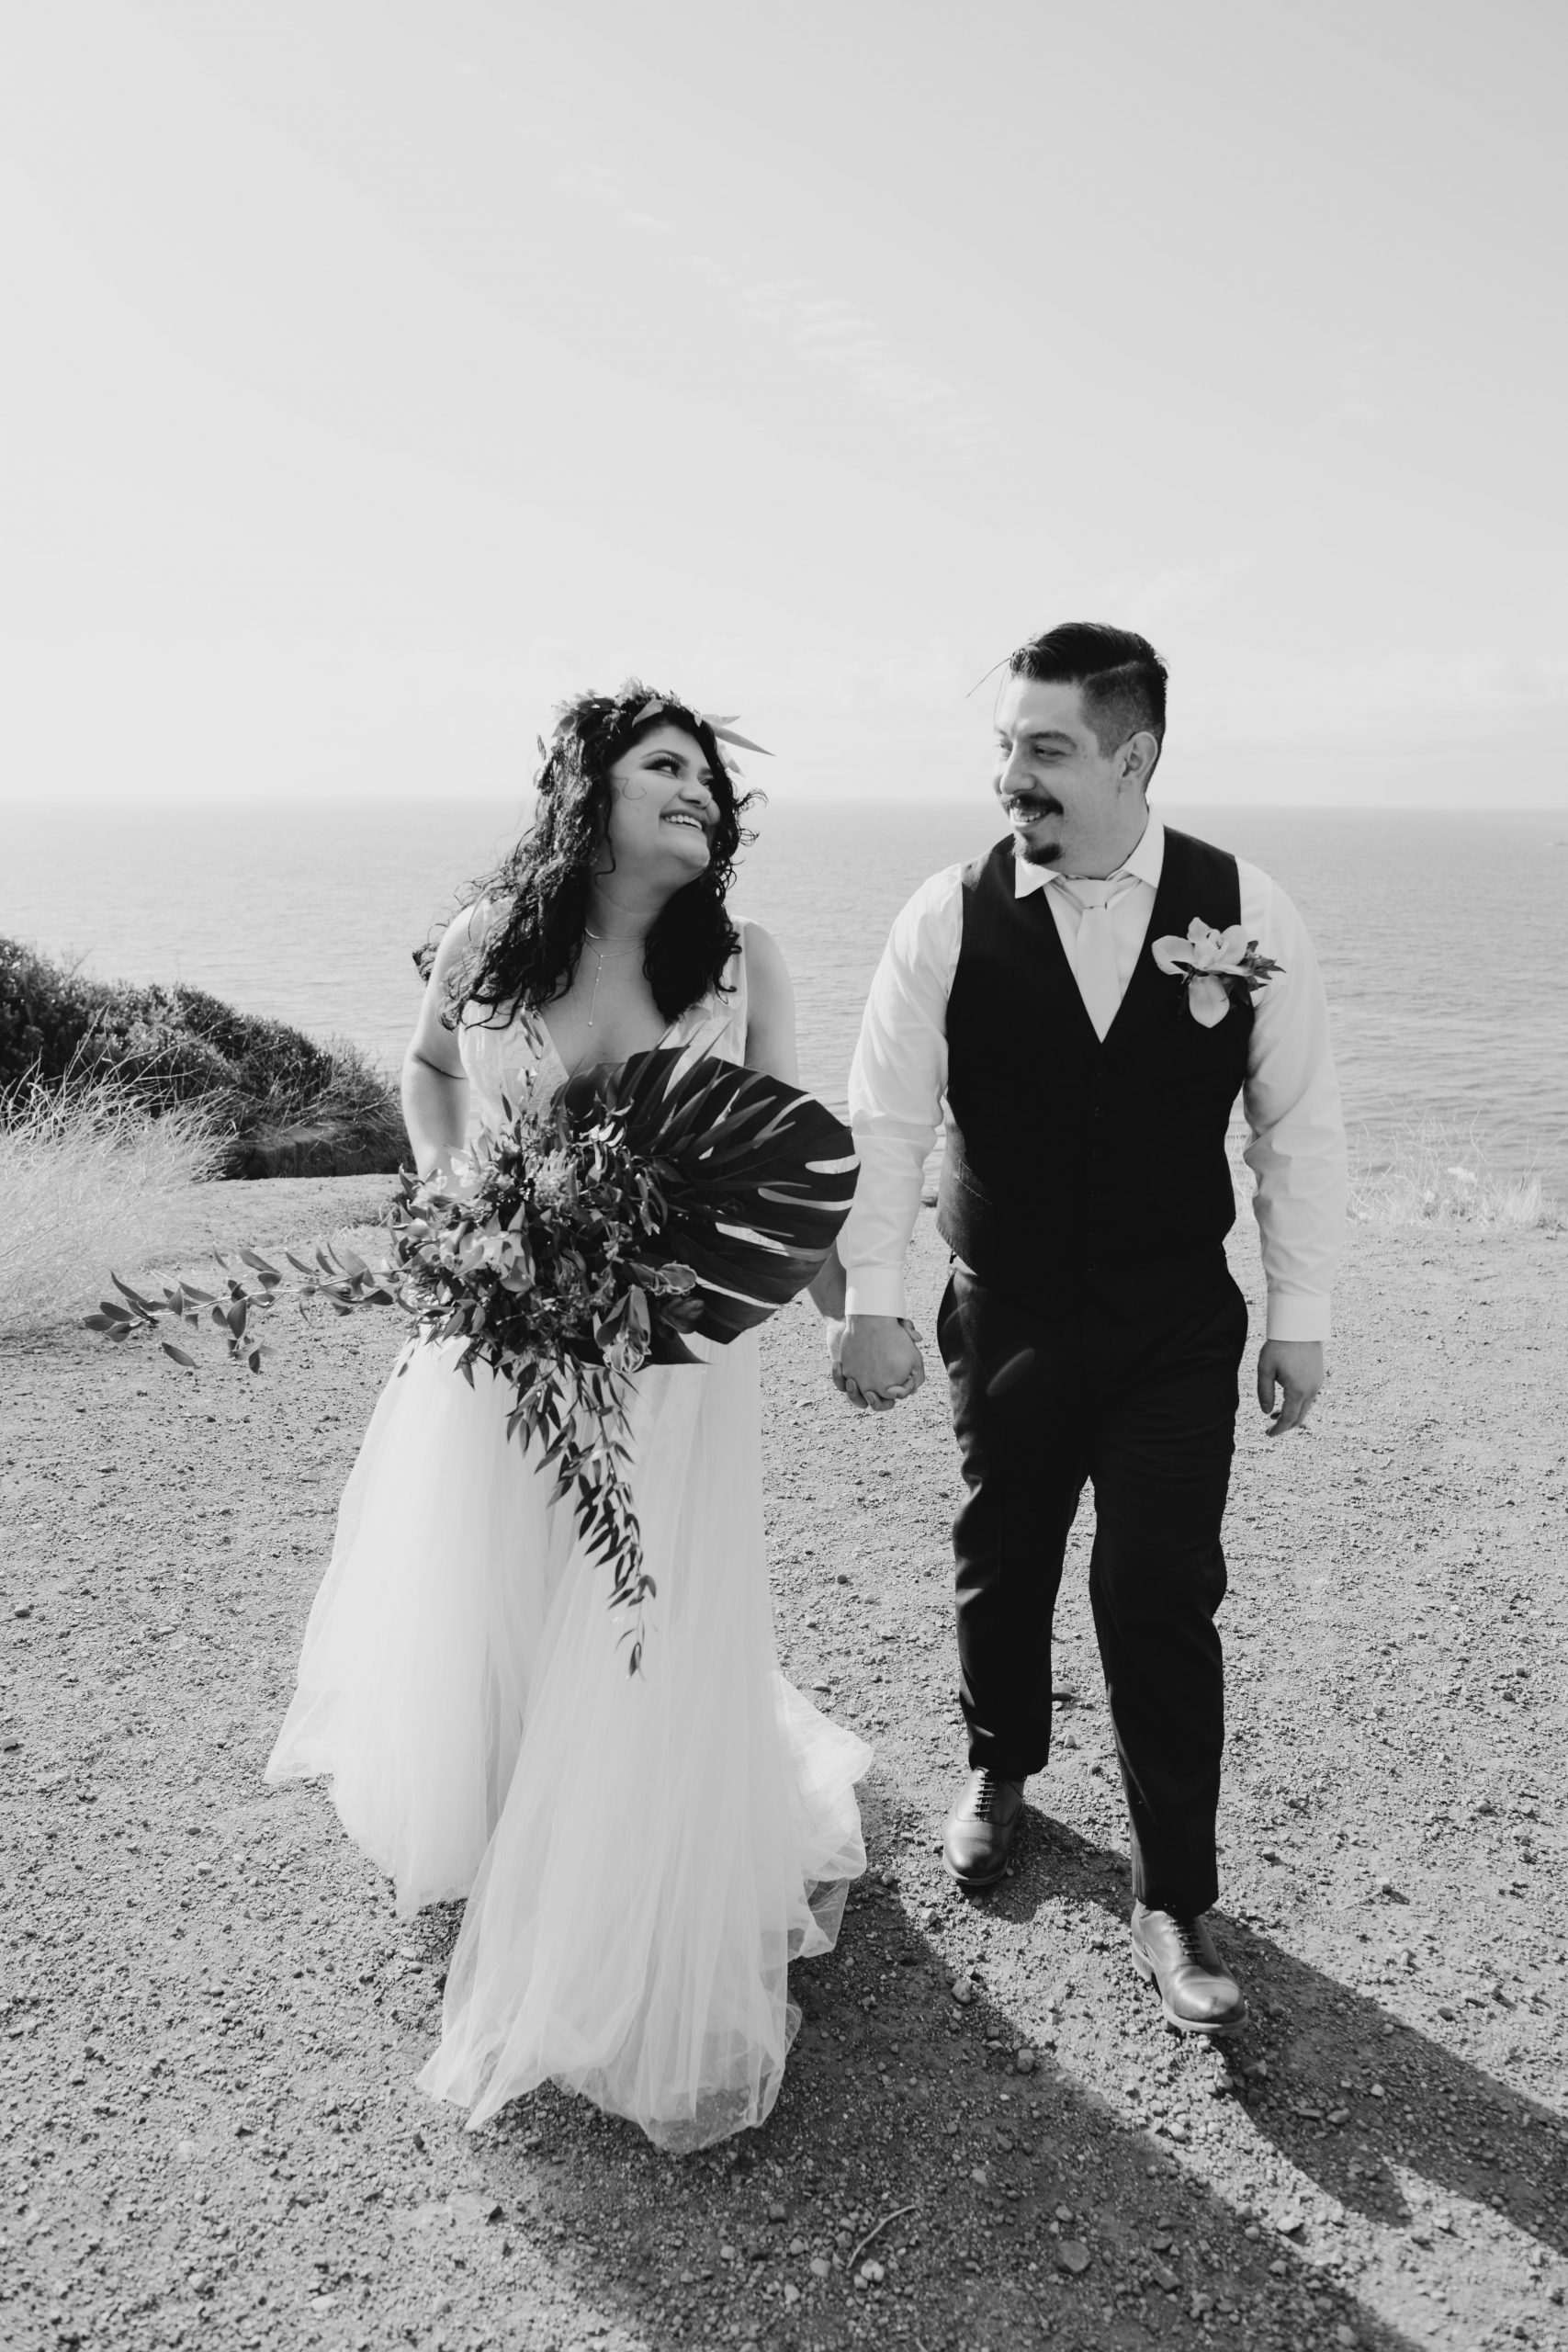 Bride and Groom black and white portrait, image by Fatima Elreda Photo